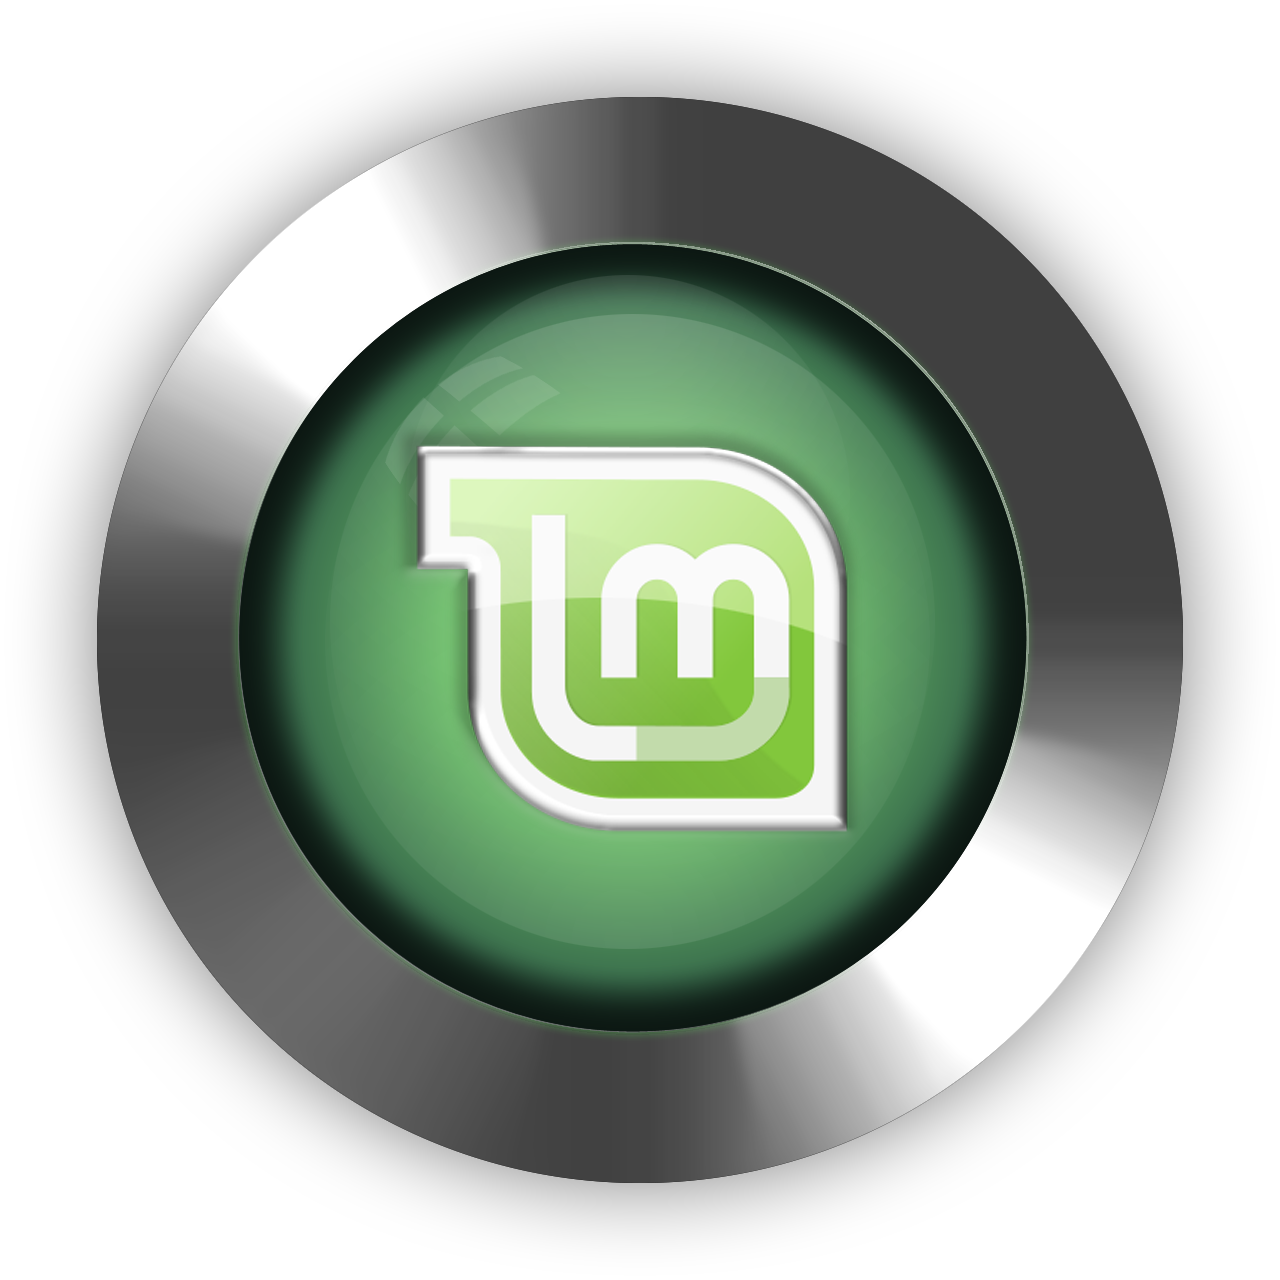 Linux mint logo png. Sidd speaks katya review